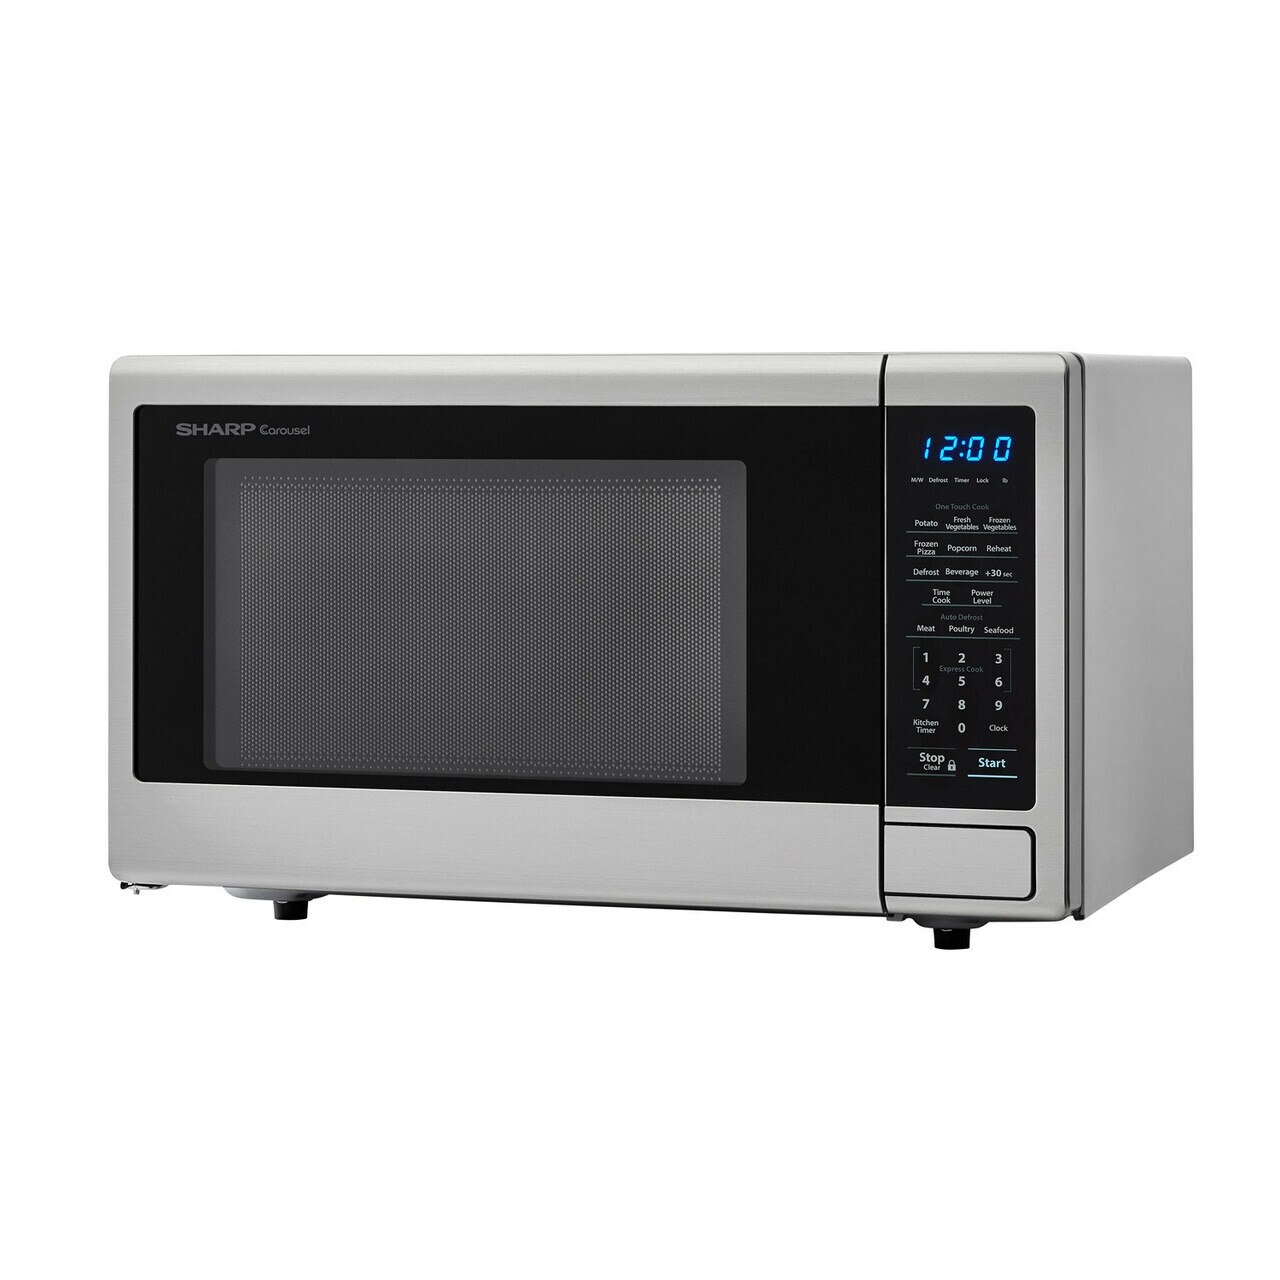 1.1 cu. ft. Sharp Stainless Steel Countertop Microwave (SMC1132CS) – left angle view